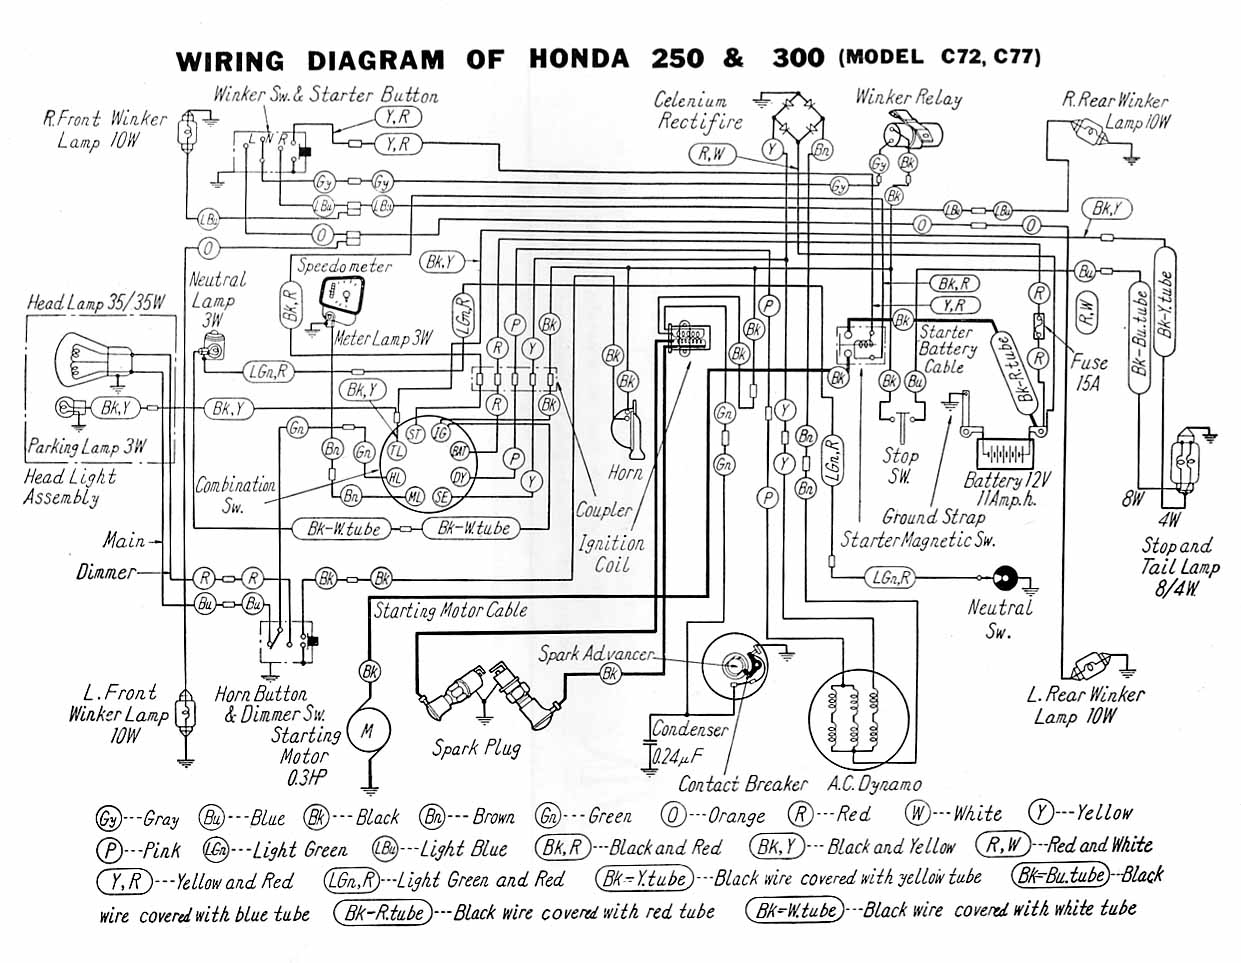 1971 Yamaha Ct1 175 Wiring Diagram 34 Images Dt1 250 Dt1b Enduro Motorcycle Schematics Honda C72 C77 Index Of 3 3e